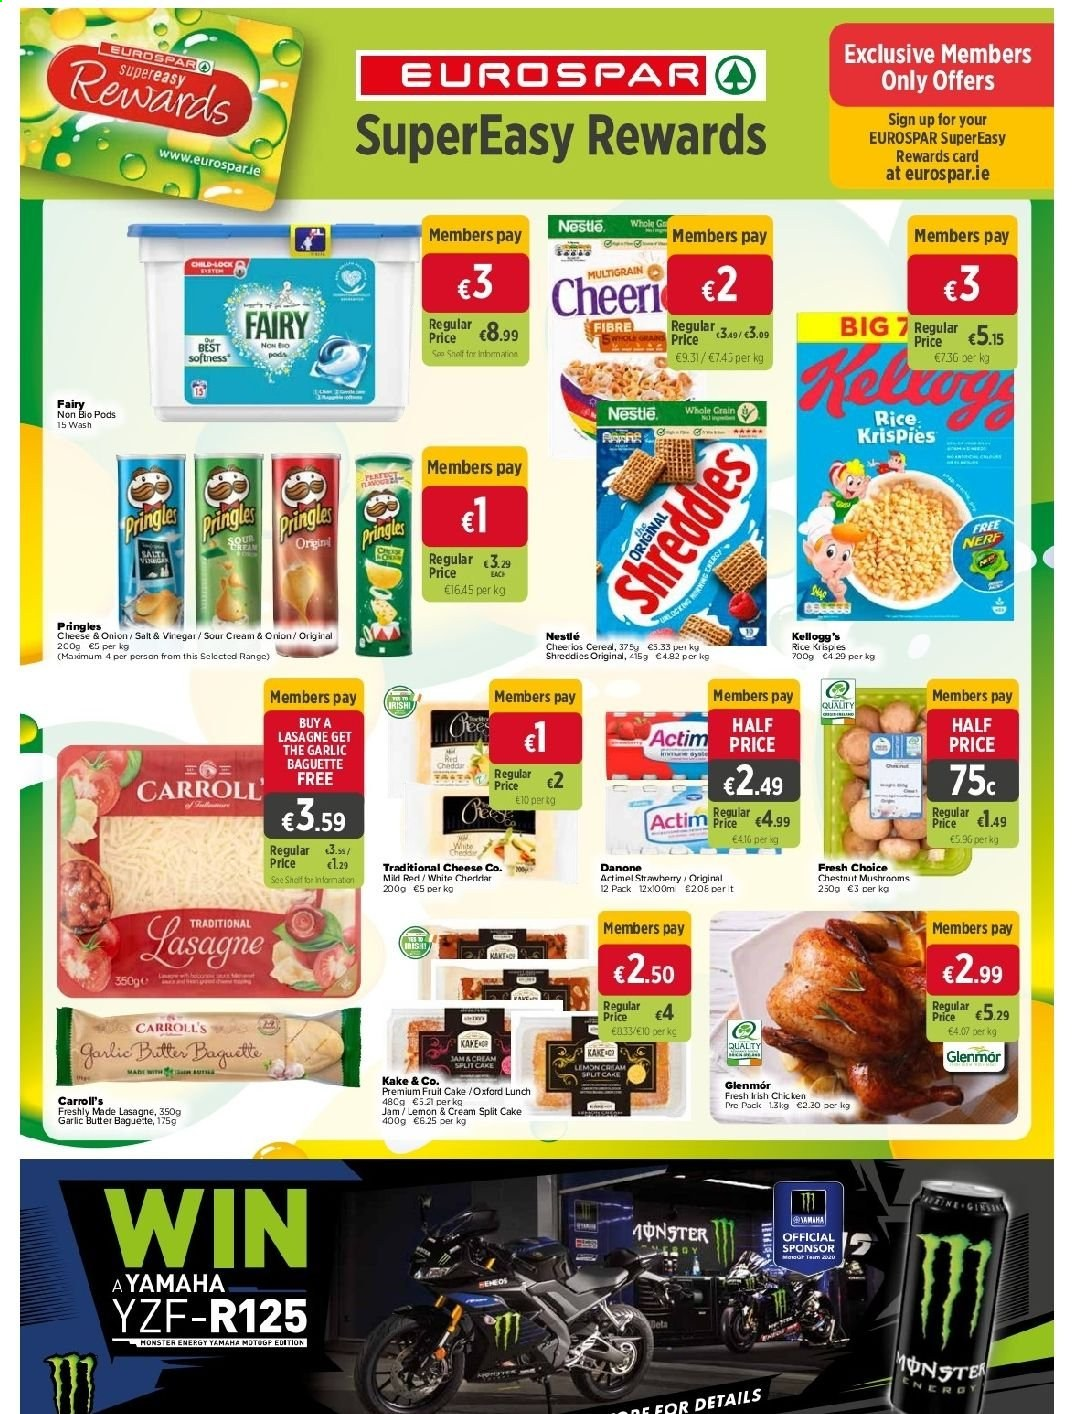 EUROSPAR offer  - 10.9.2020 - 30.9.2020 - Sales products - baguette, butter, cream, garlic, lasagne, mushrooms, nerf, nestlé, rice, sour cream, jam, pringles, chestnuts, chicken, onion, cheese, cake, danone, salt, card, fruit, lemon. Page 8.